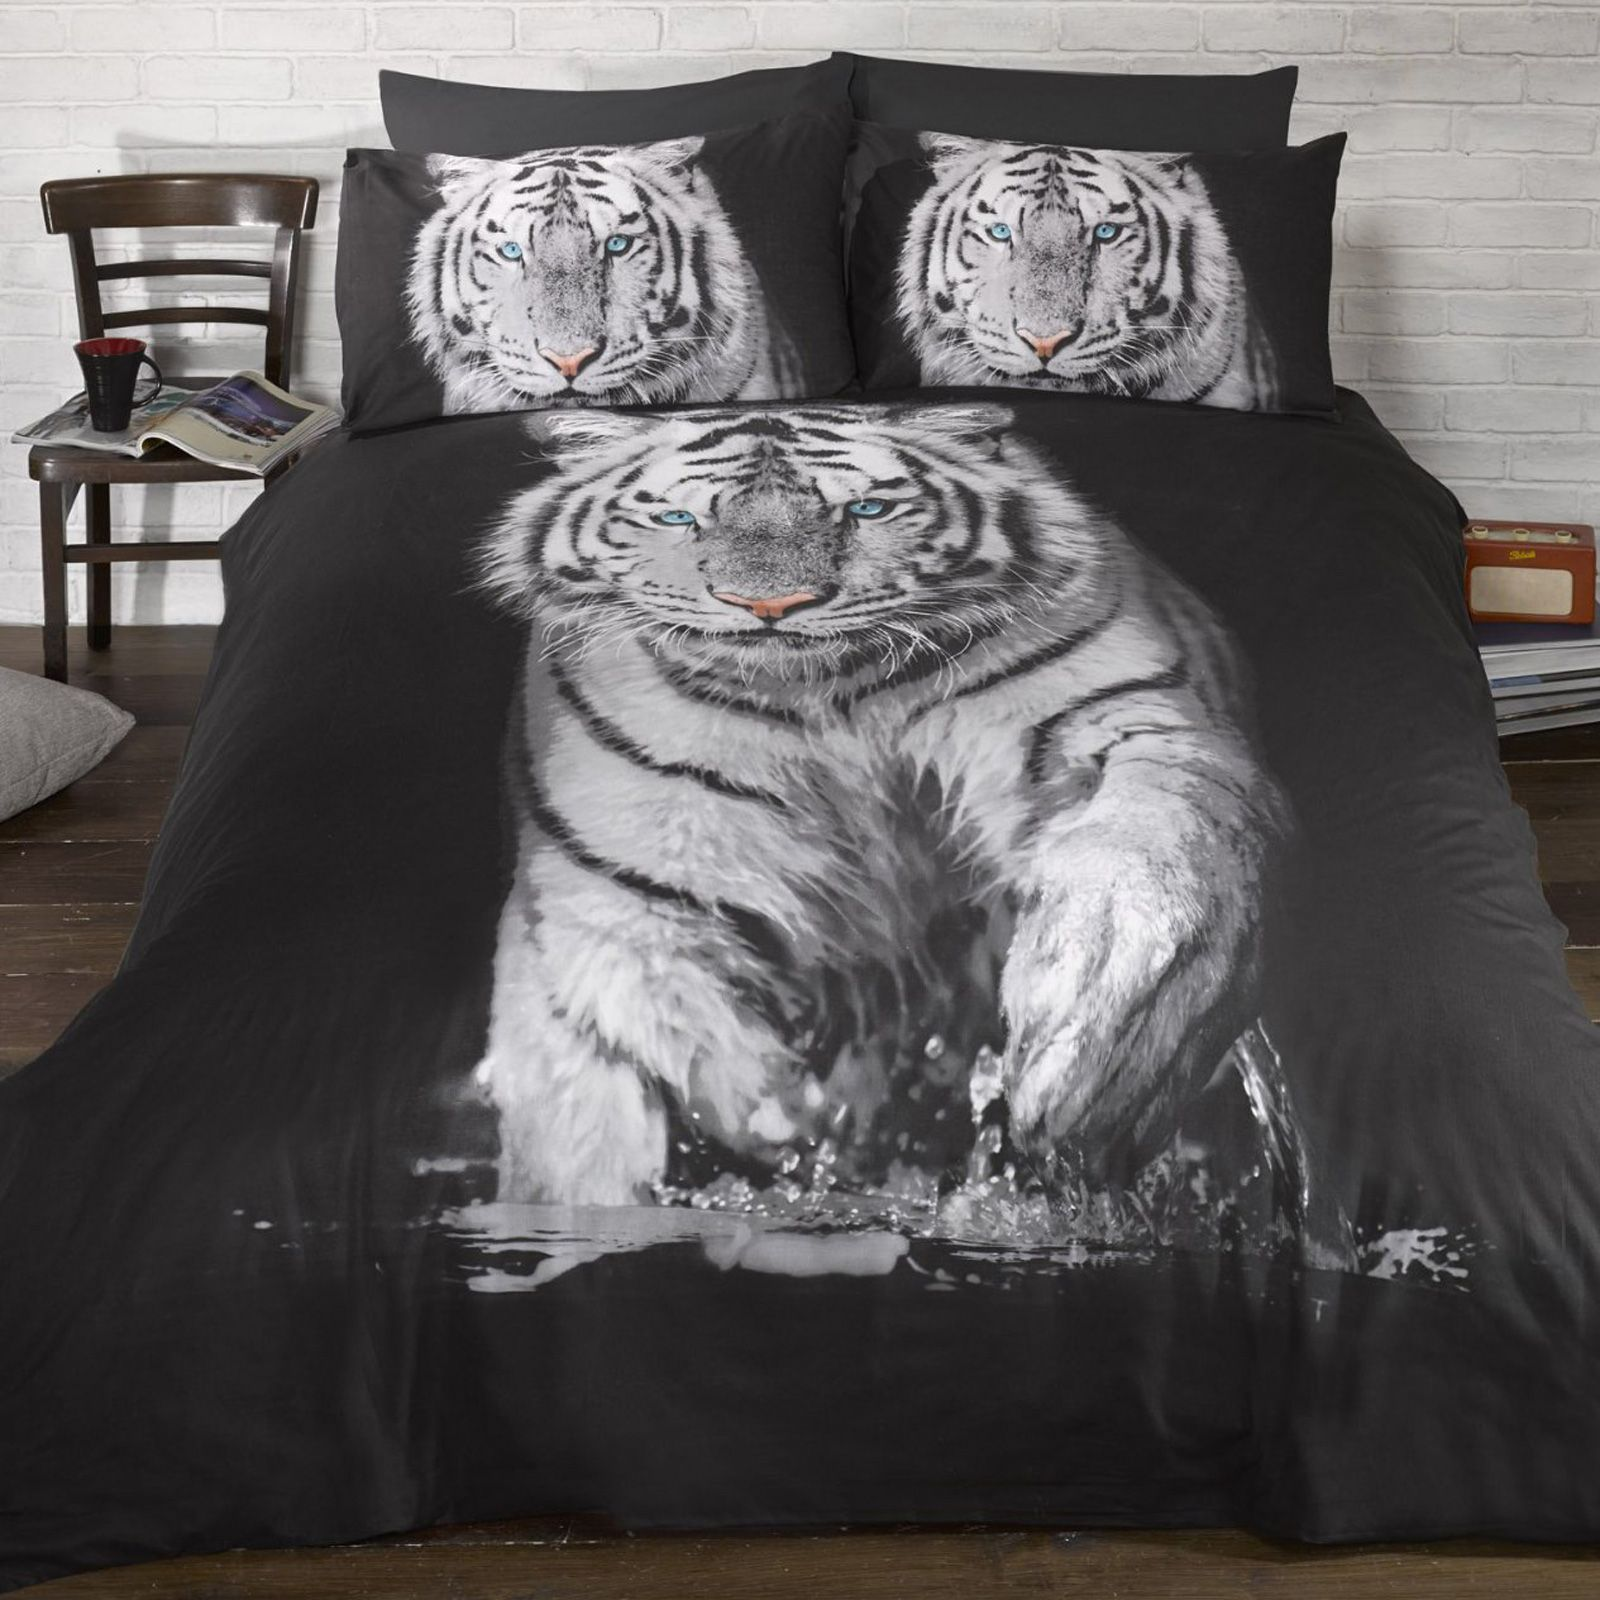 white tiger single duvet cover pillowcase set new bedding. Black Bedroom Furniture Sets. Home Design Ideas